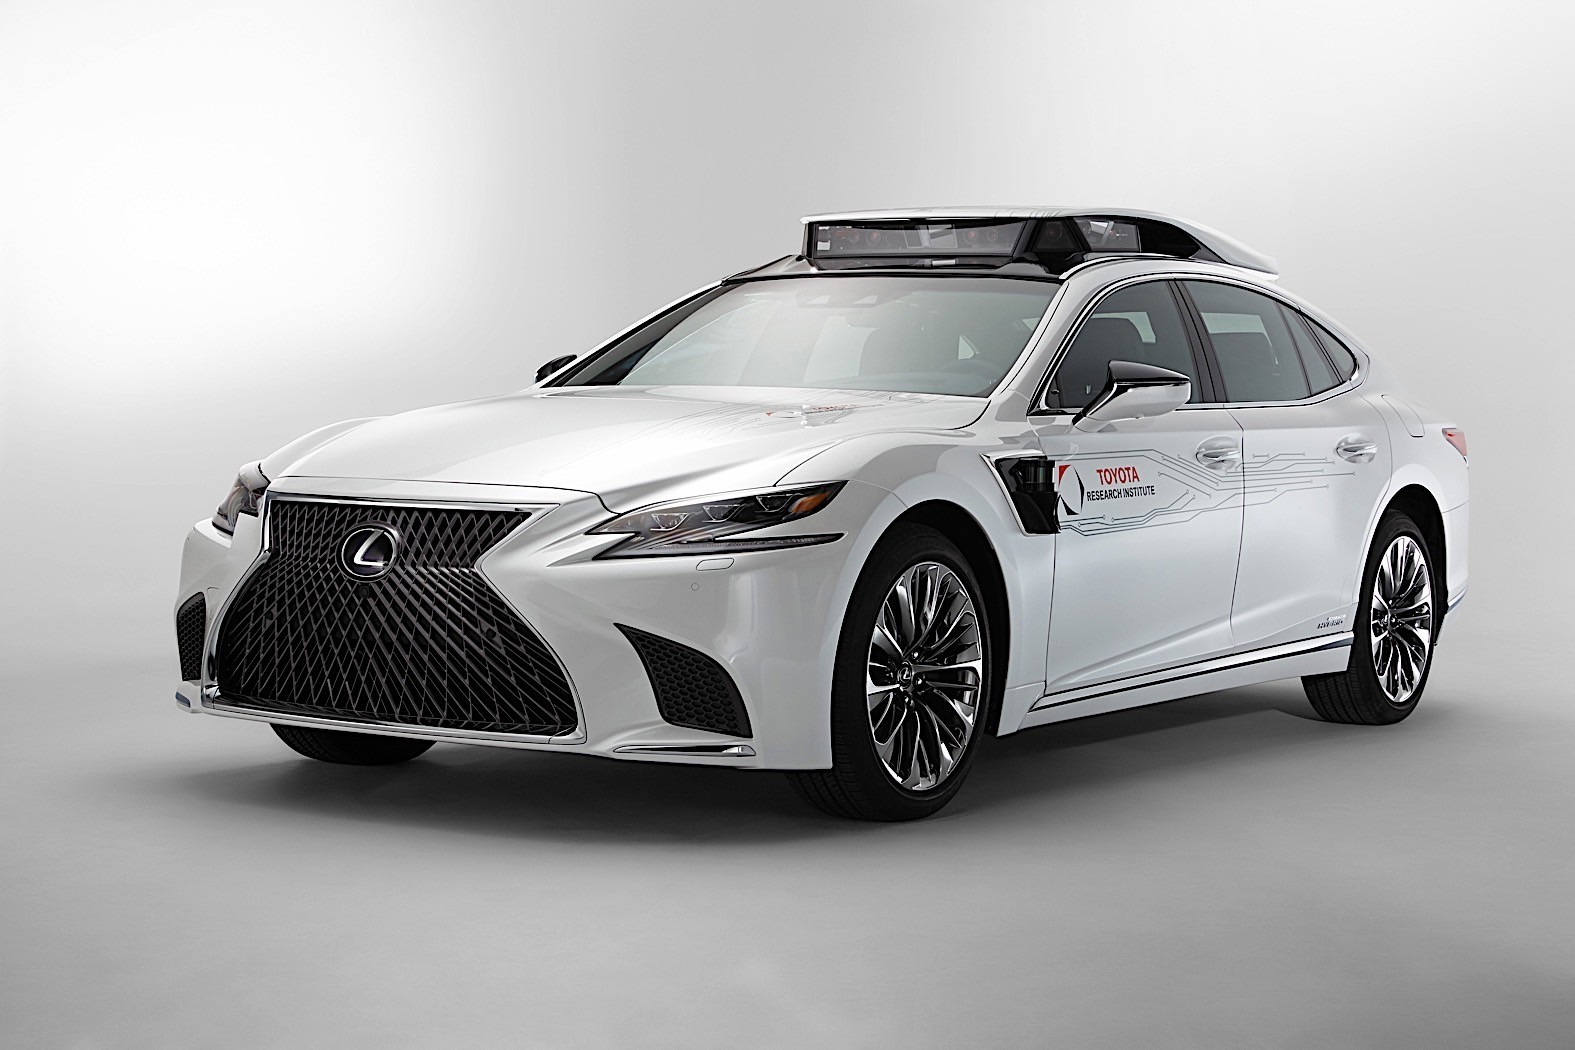 Toyota To Show P4 Autonomous Car Based On The Lexus Ls At